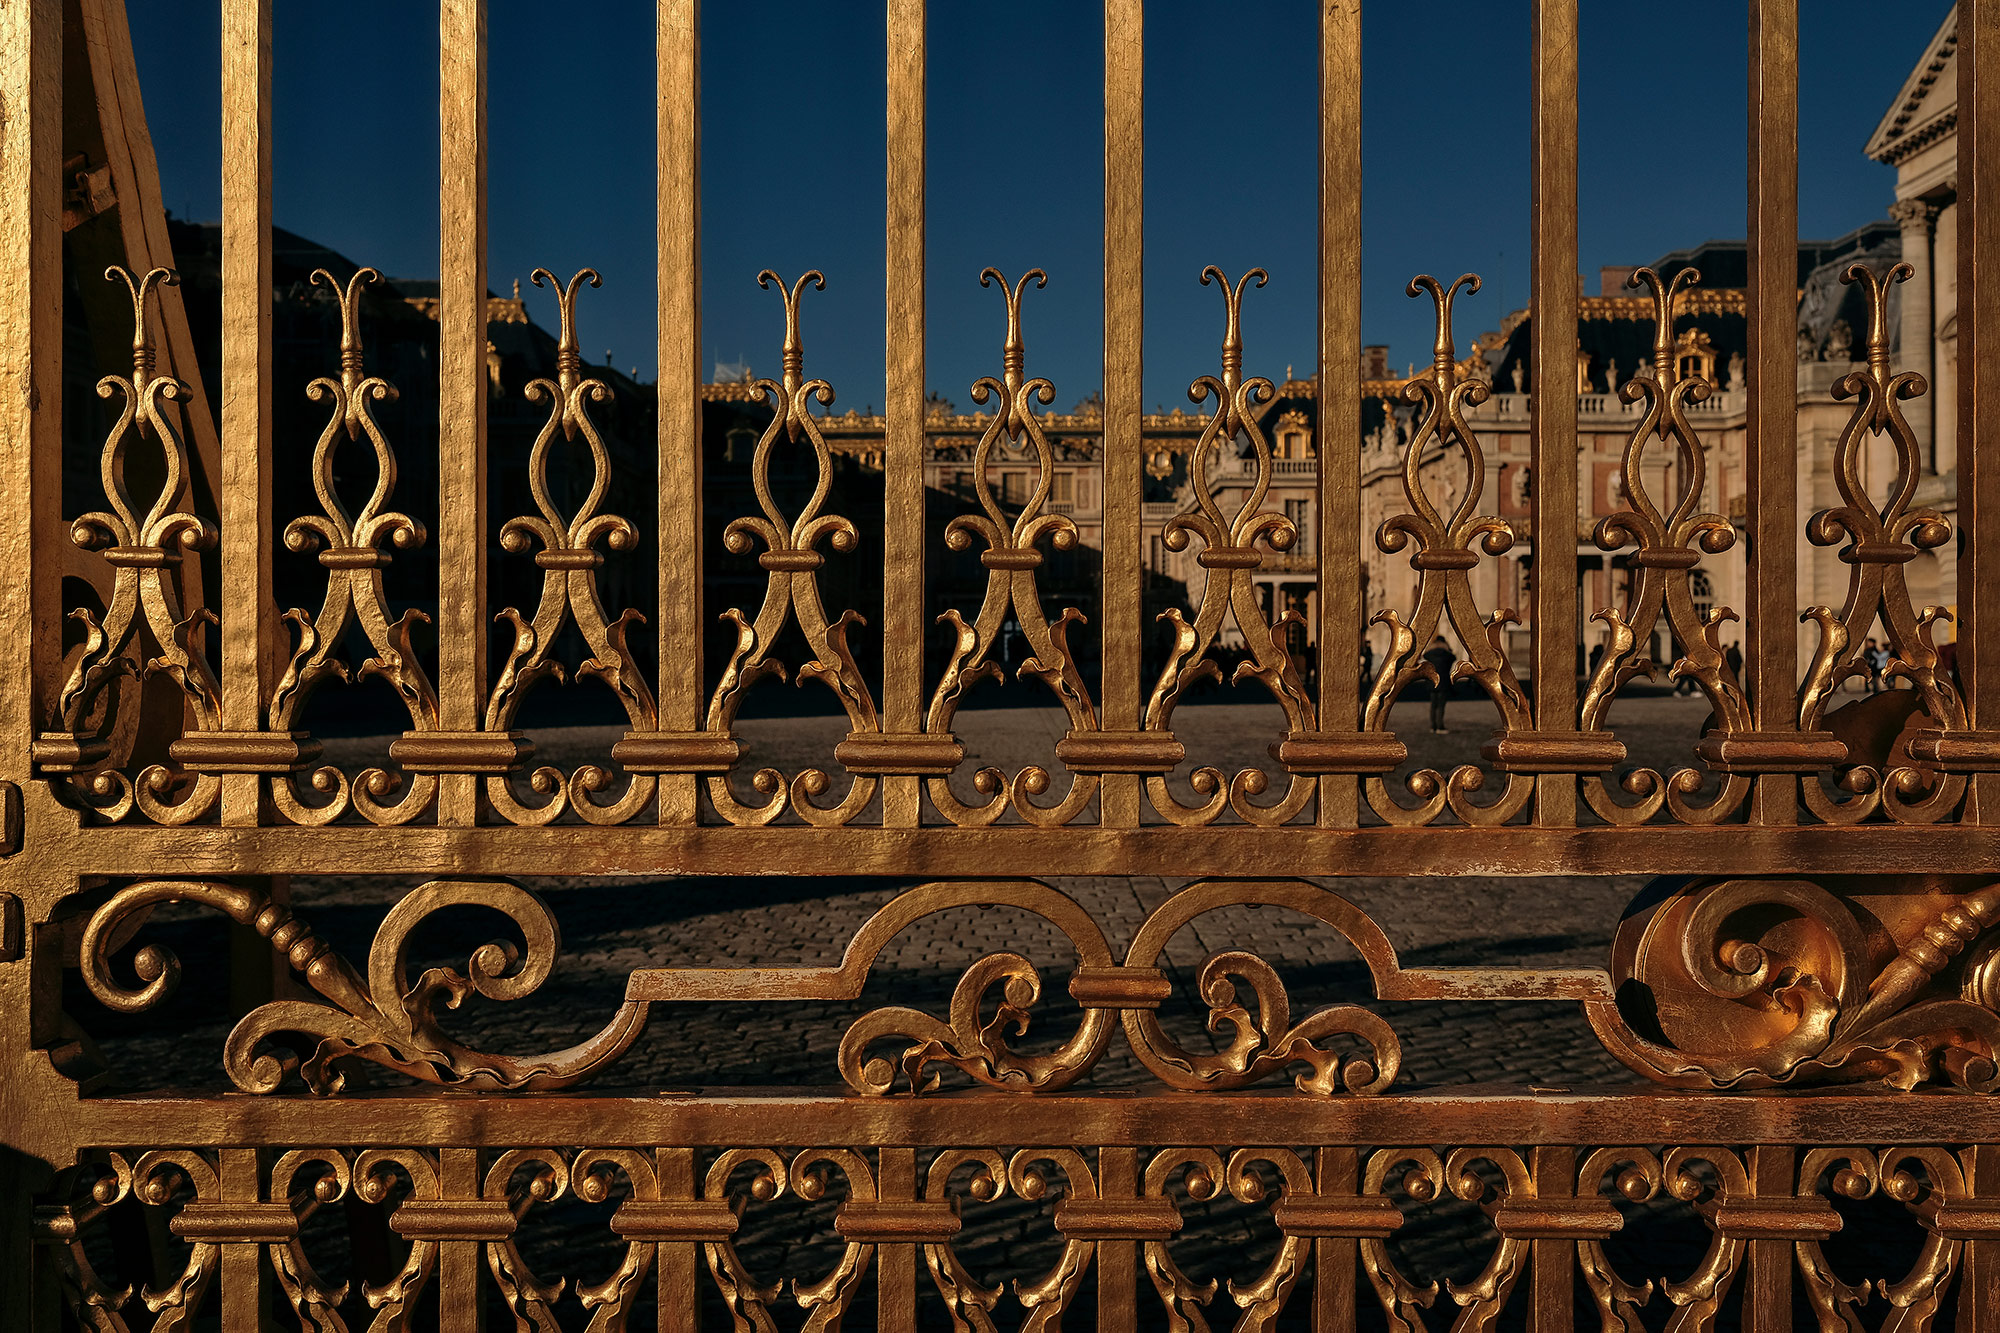 The gold-gilded gates of Versailles outside of Paris, France, photographed by travel photographer, Todd Spoth.